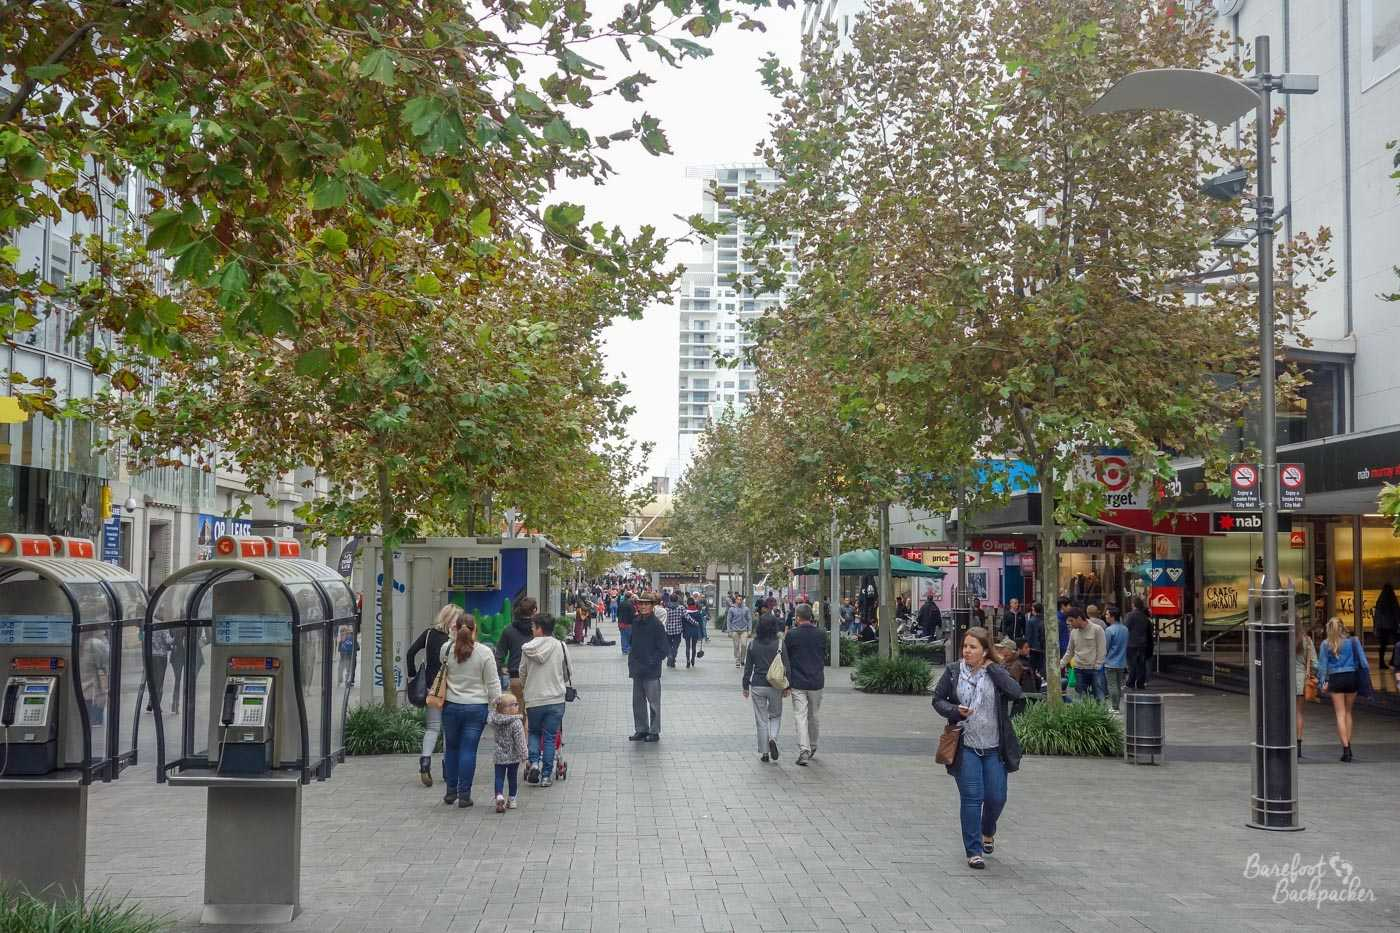 One of the typical shopping streets of Perth city centre